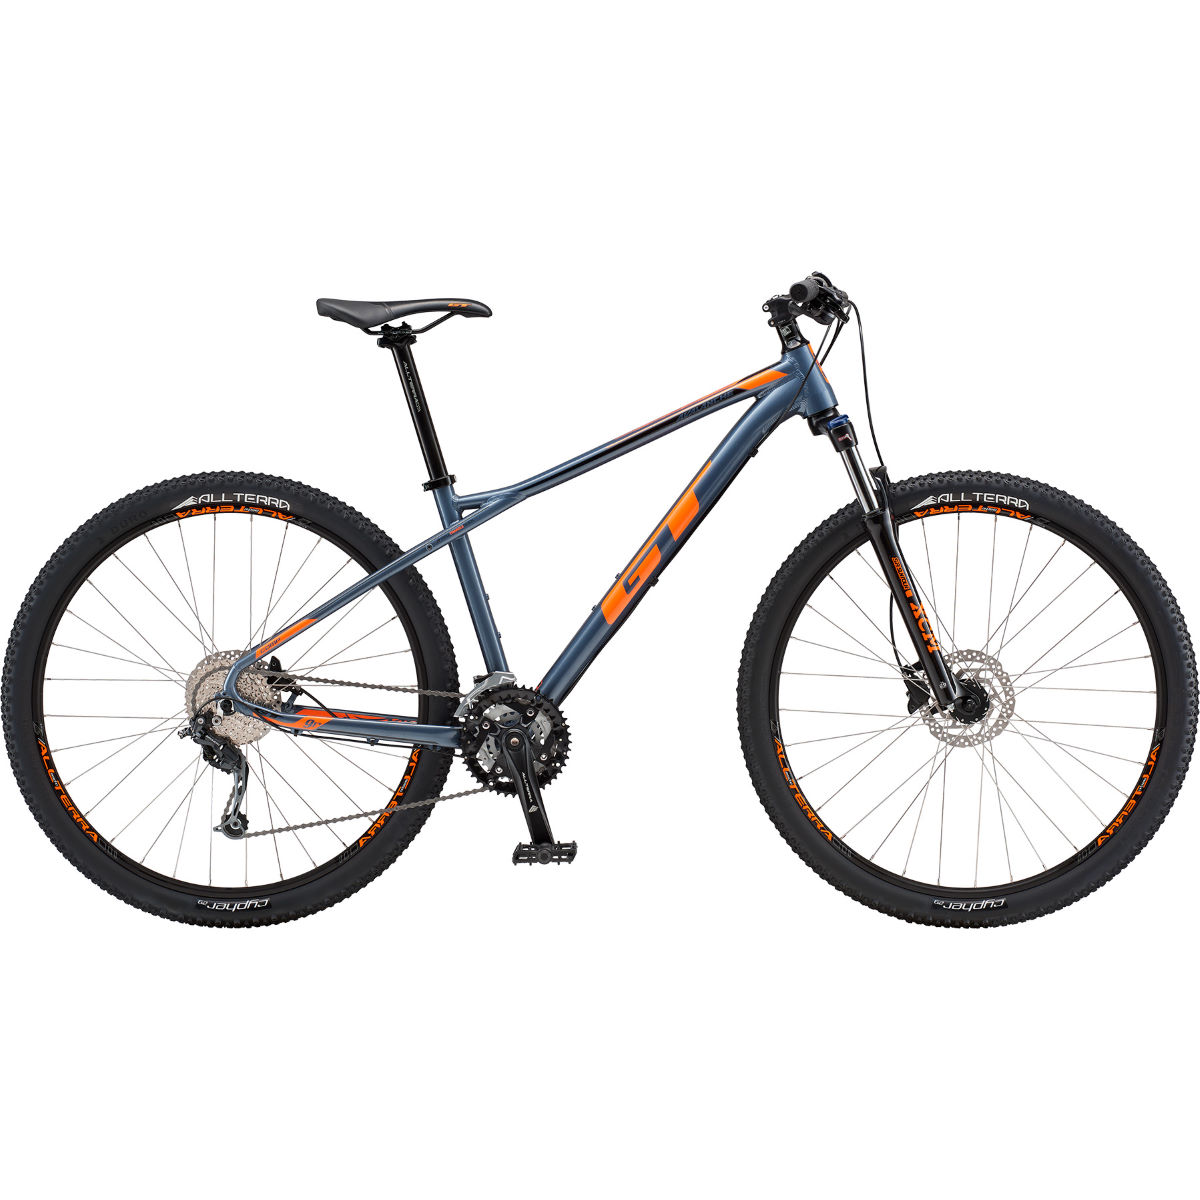 GT Avalanche Comp 29 Hardtail Mountain Bike - Bicicletas de MTB rígidas